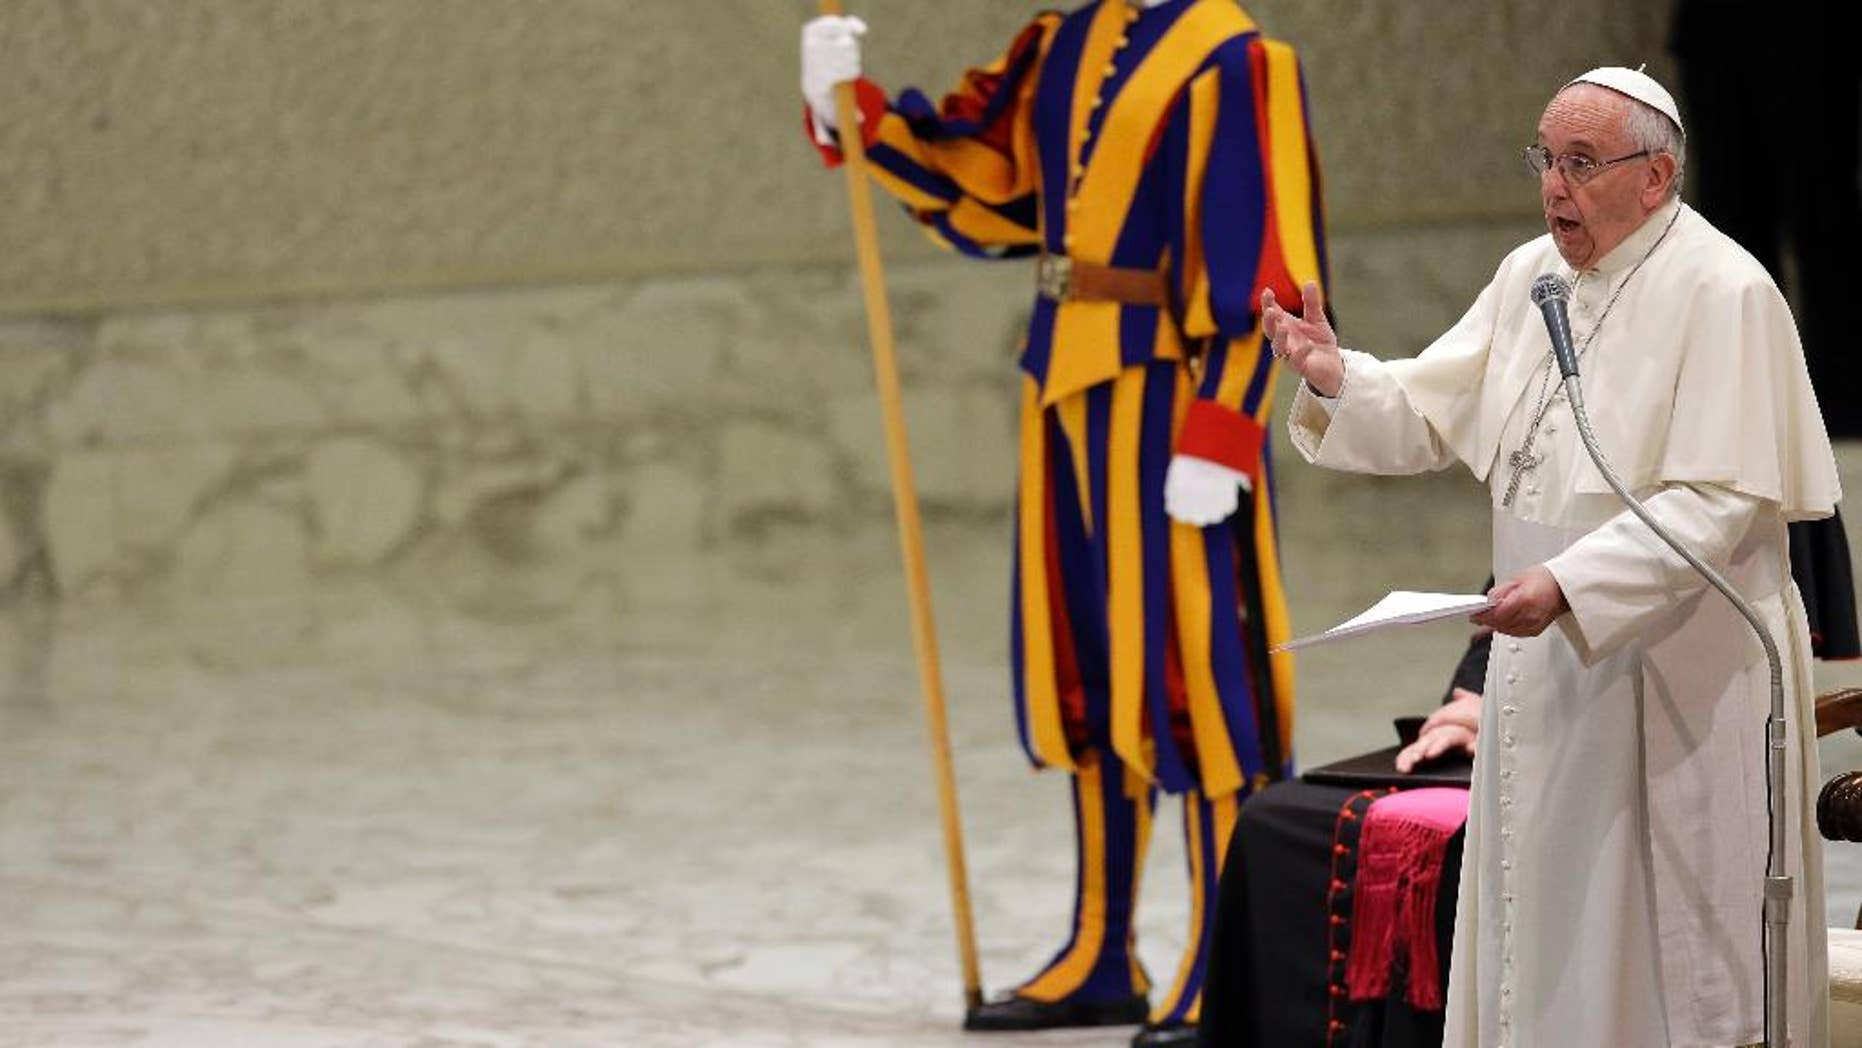 """Pope Francis delives his speech during an audience with members of the """"Policoro Group"""" a catholic association created by Italian Episcopal Conference to promote youth employment, at the Vatican, Monday, Dec. 14, 2015. (AP Photo/Gregorio Borgia)"""